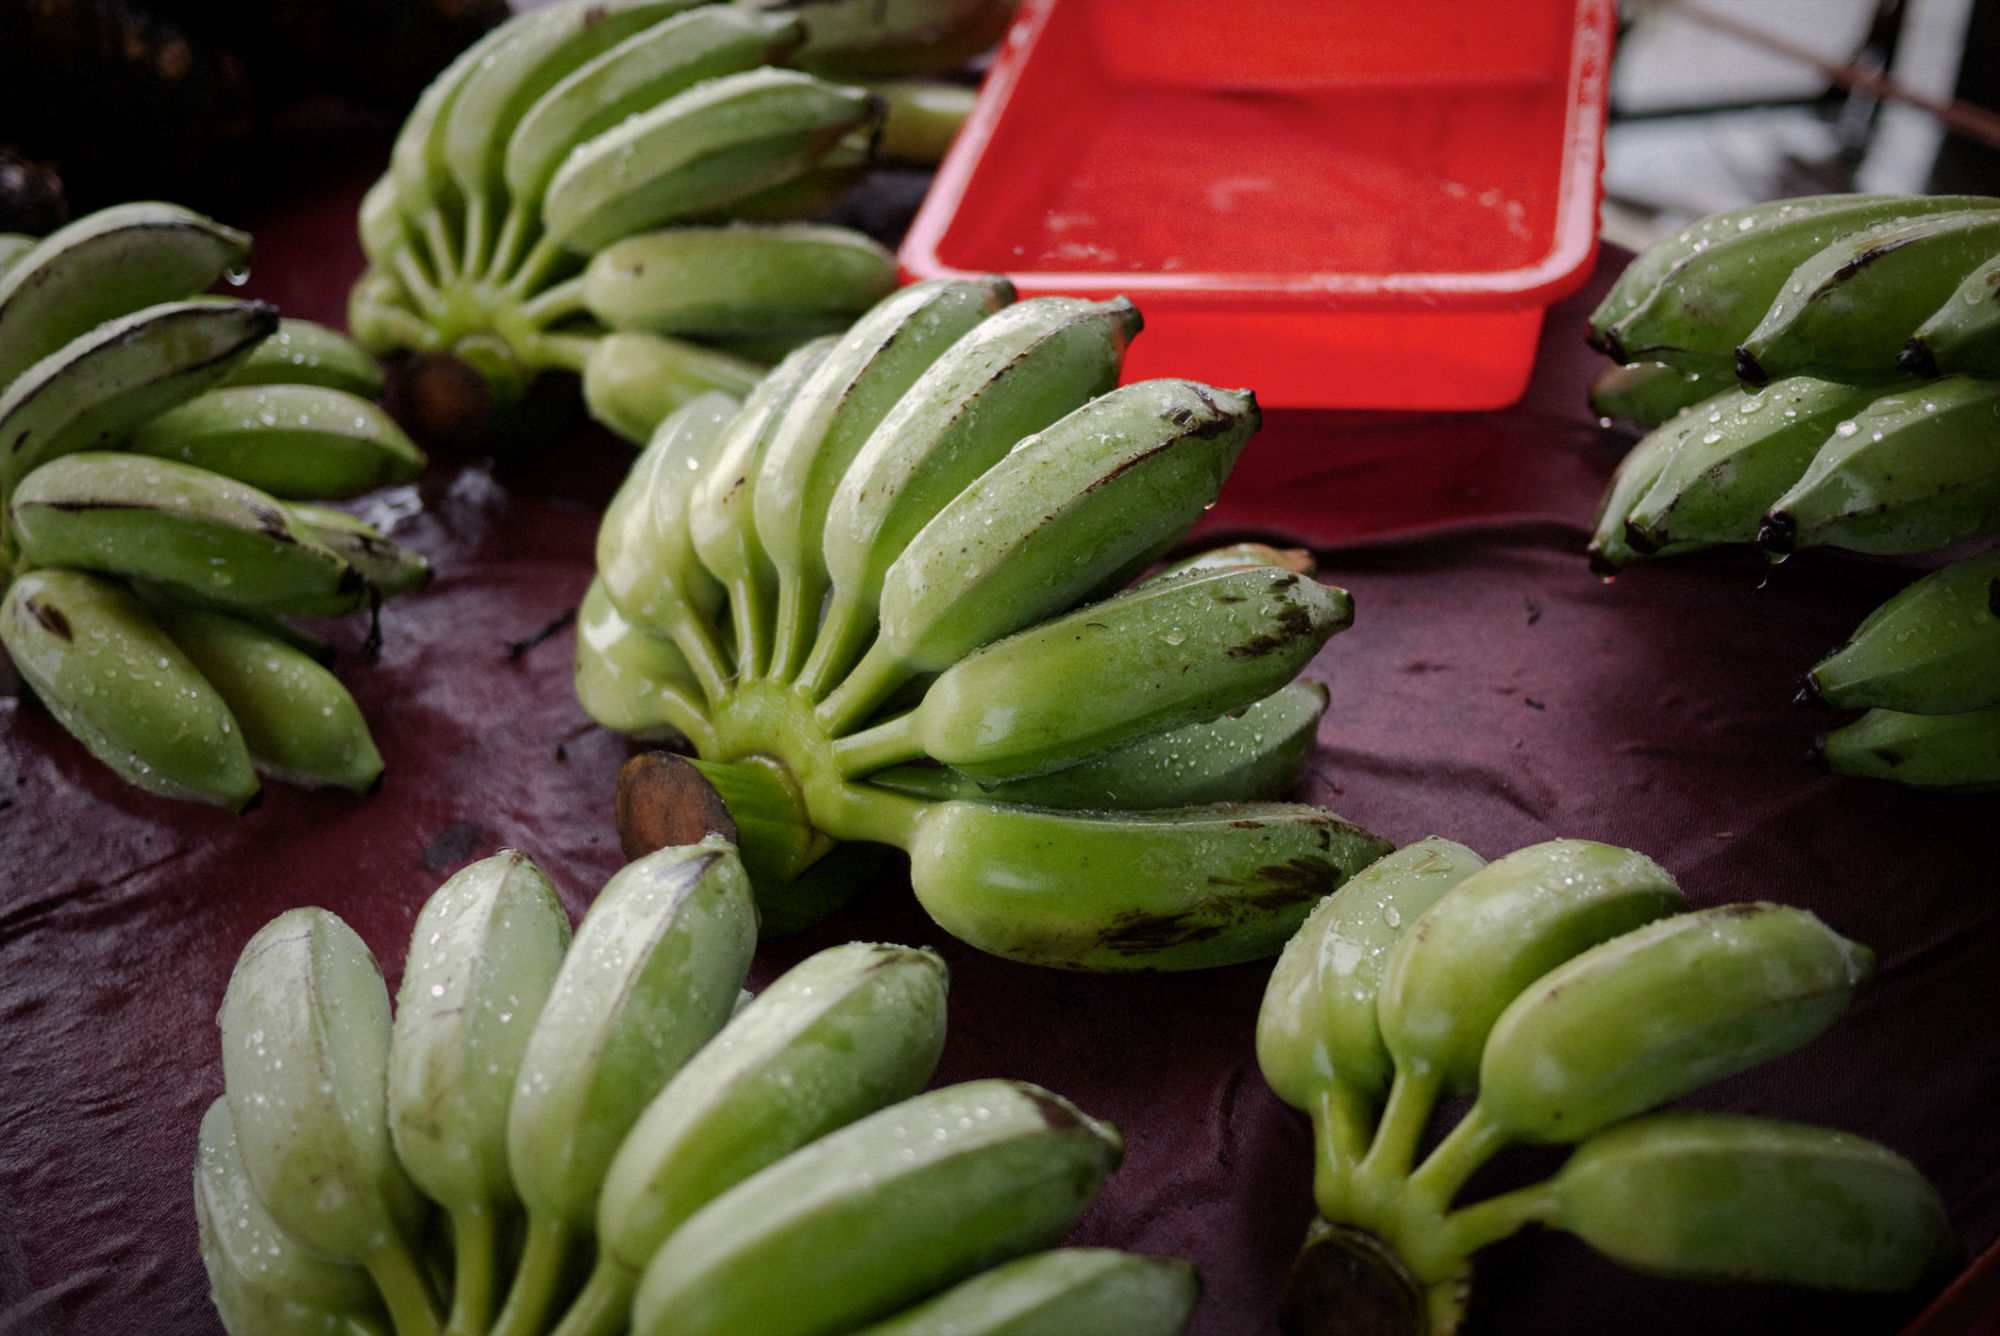 Bunches of plantains being washed